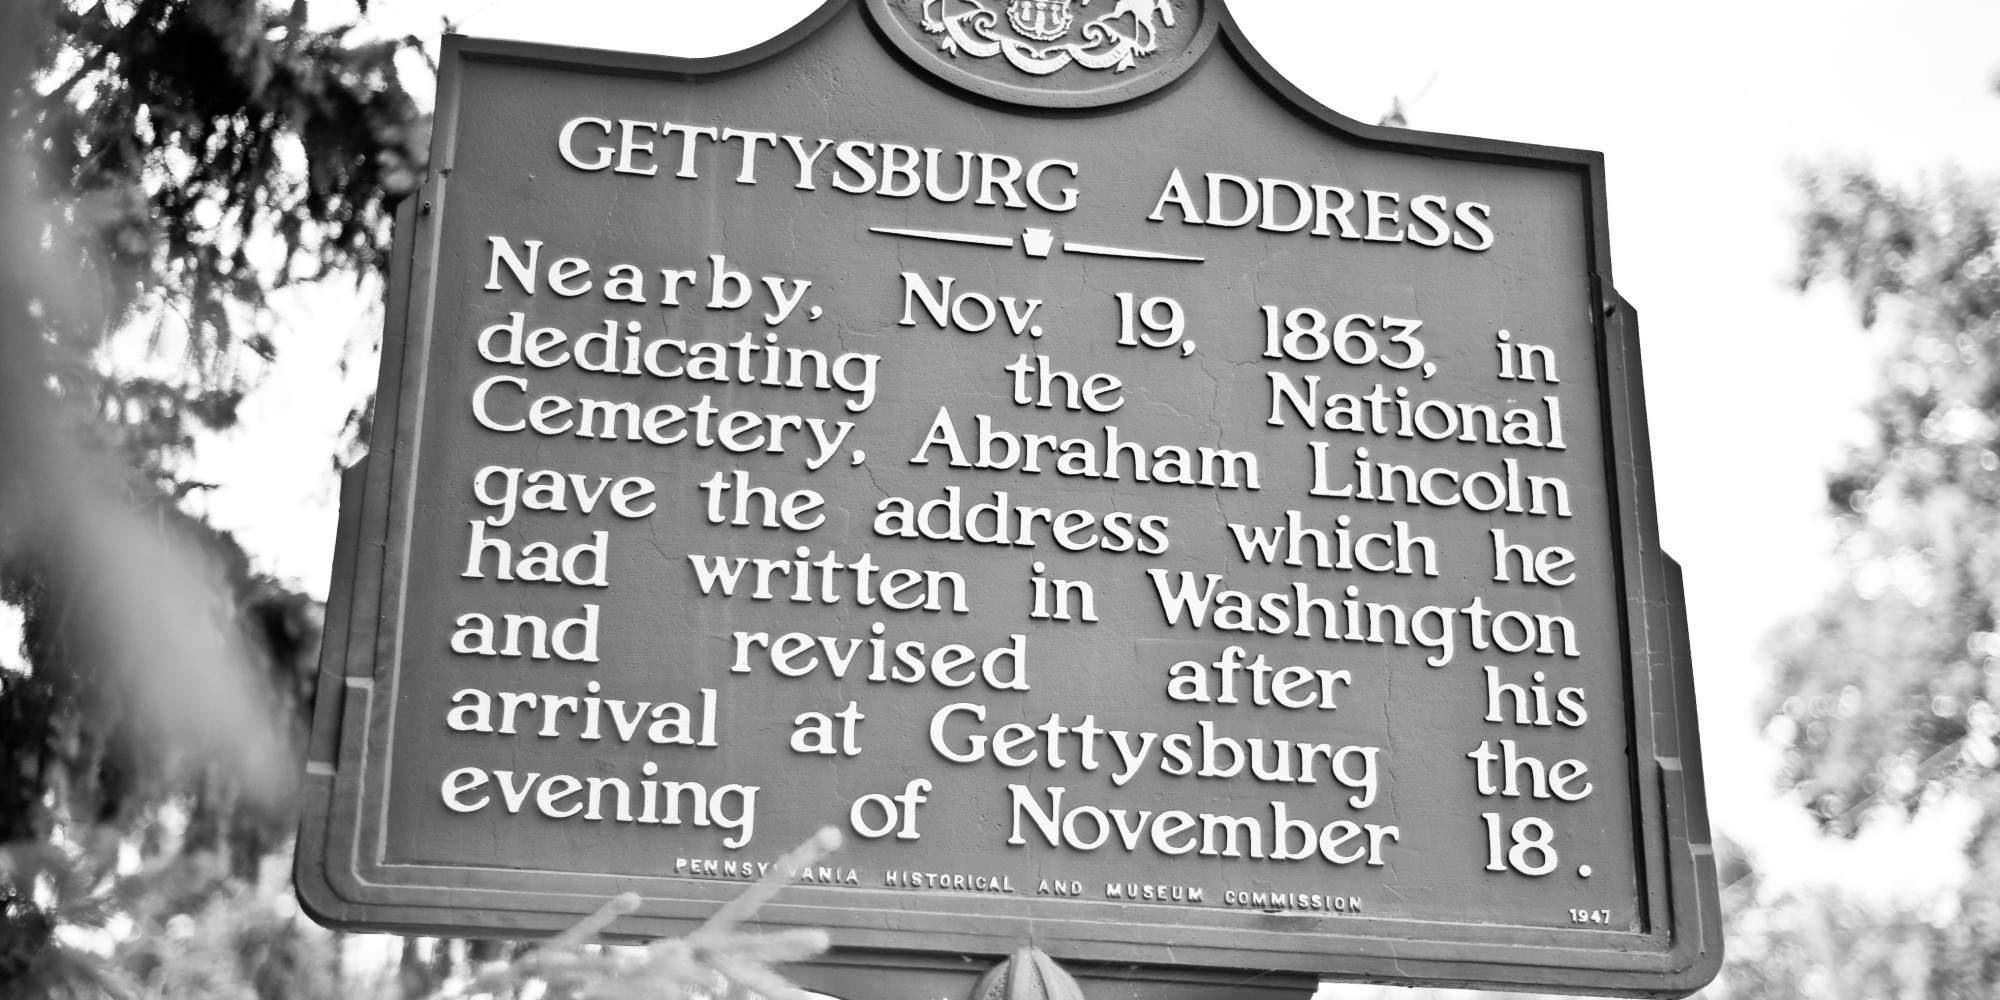 Can someone explain to me the Gettysburgs adress?